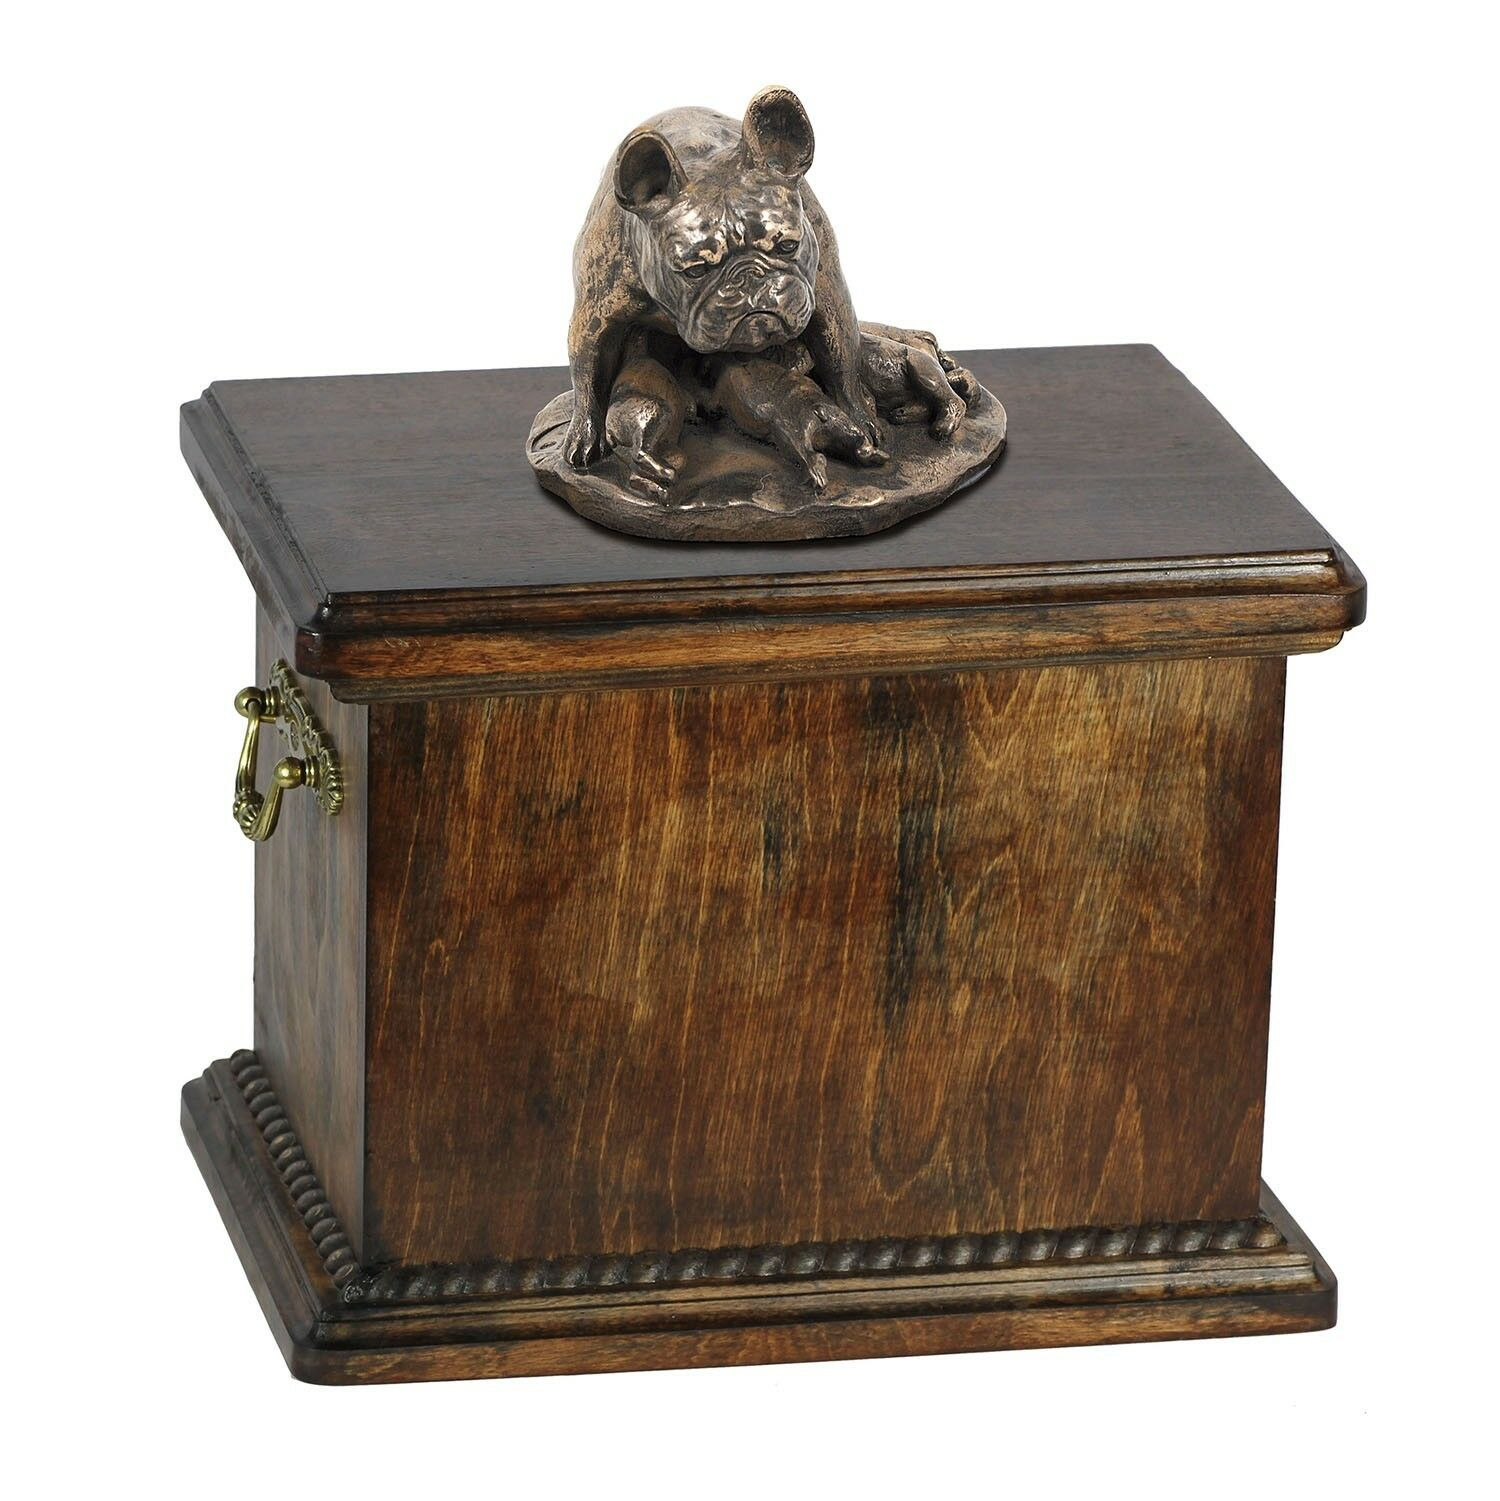 French Bulldog type 2  wooden urn with dog statue, Art Dog type 1